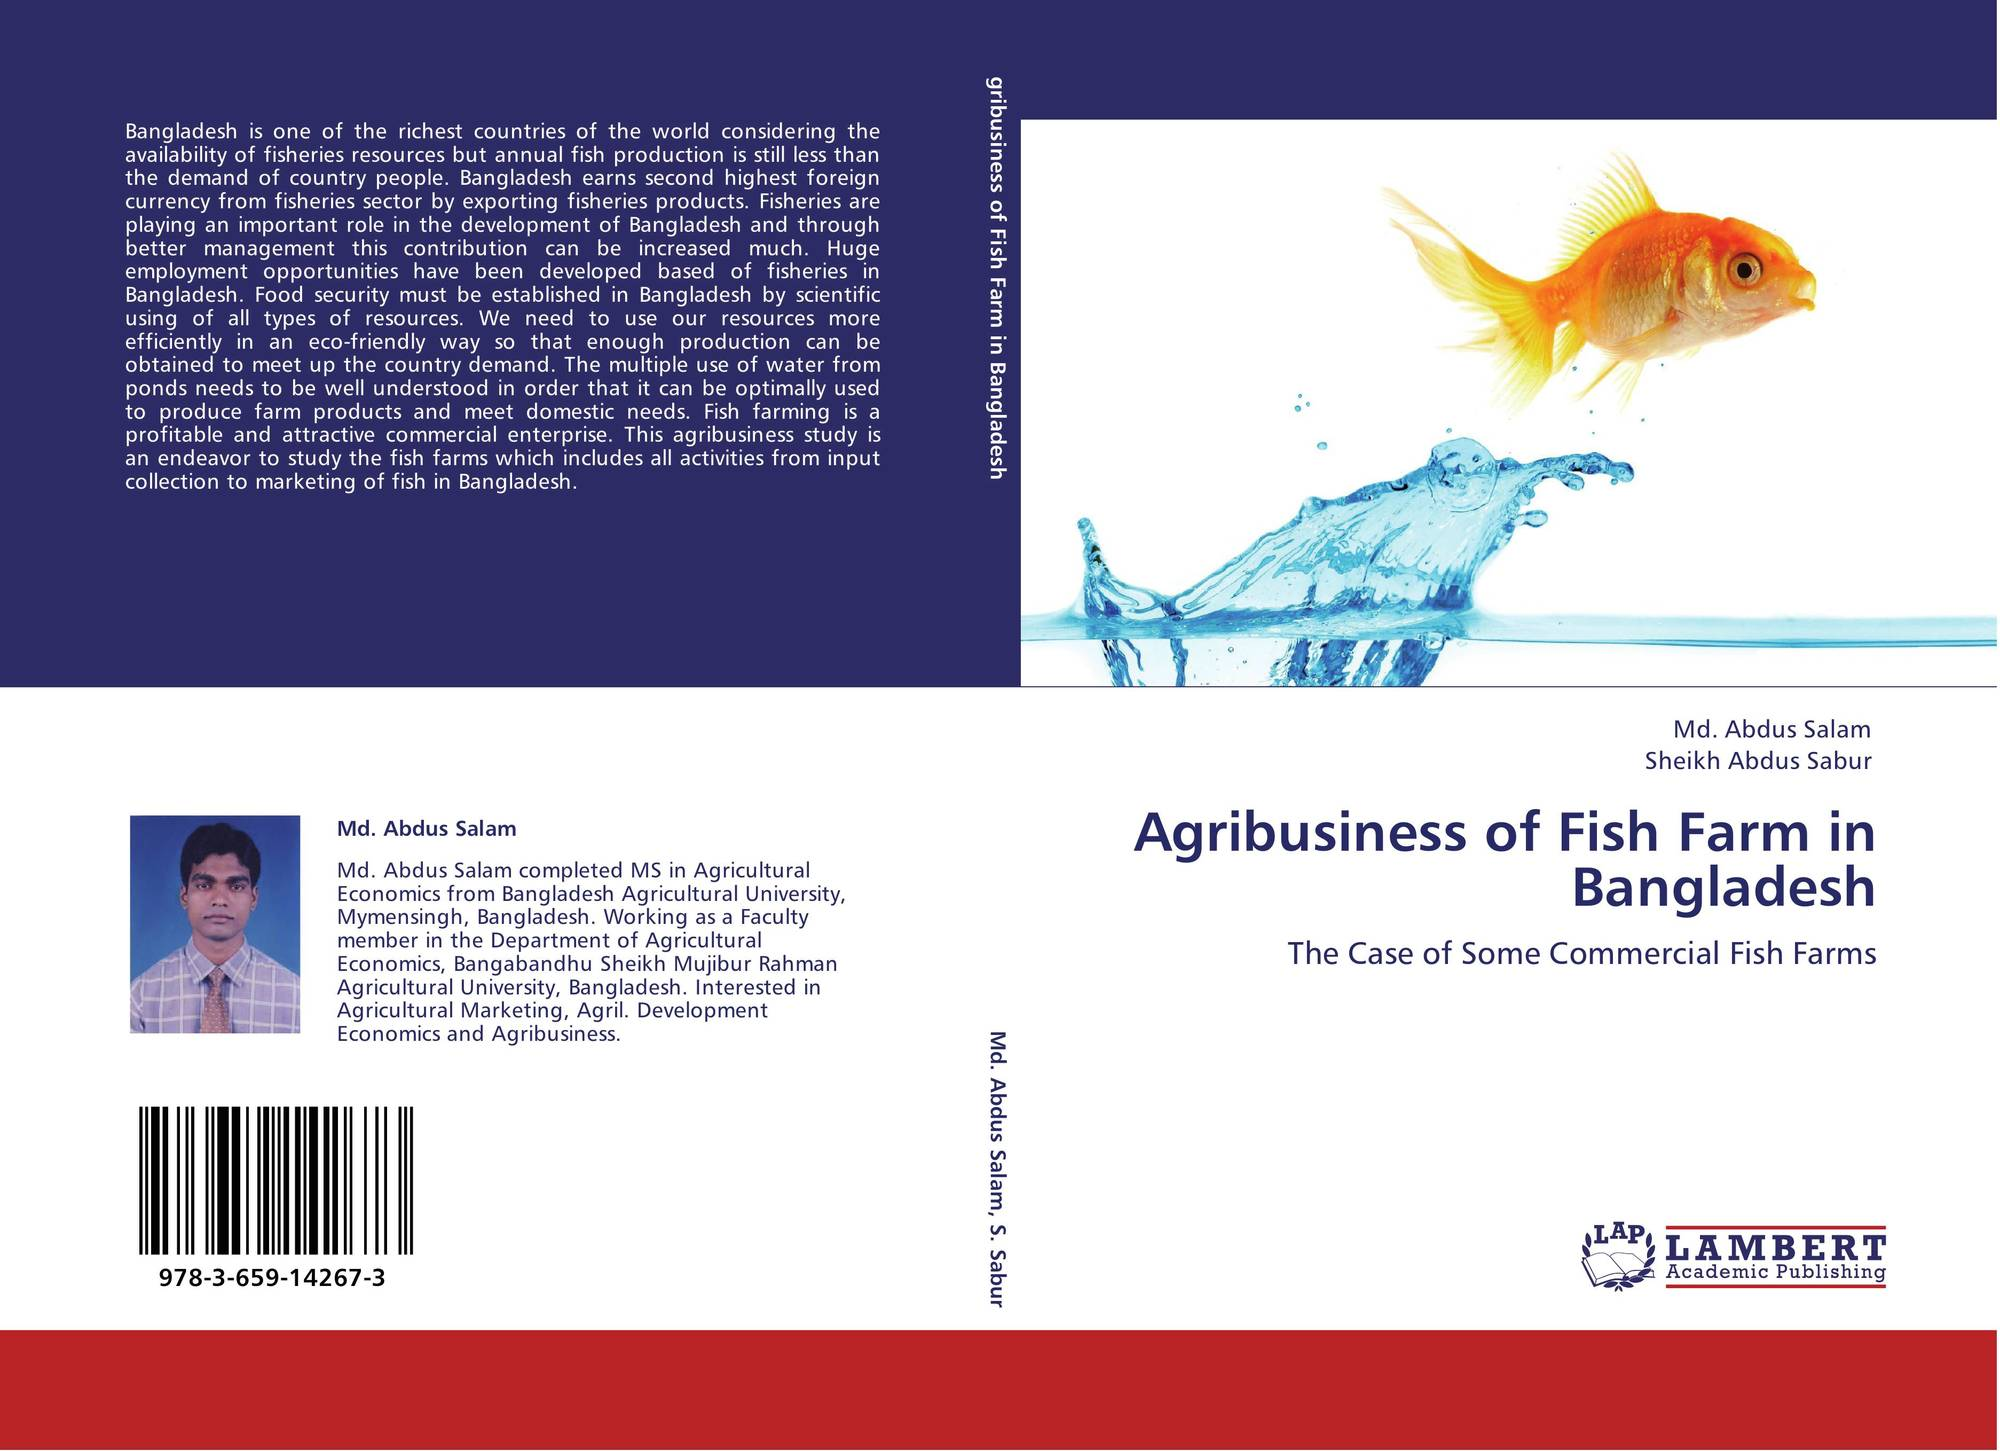 agribusiness in bangladesh Agribusiness potentials for bangladesh – an analysis muhammad mahboob ali anisul m islam abstract: bangladesh cannot sustain long-run economic progress without.